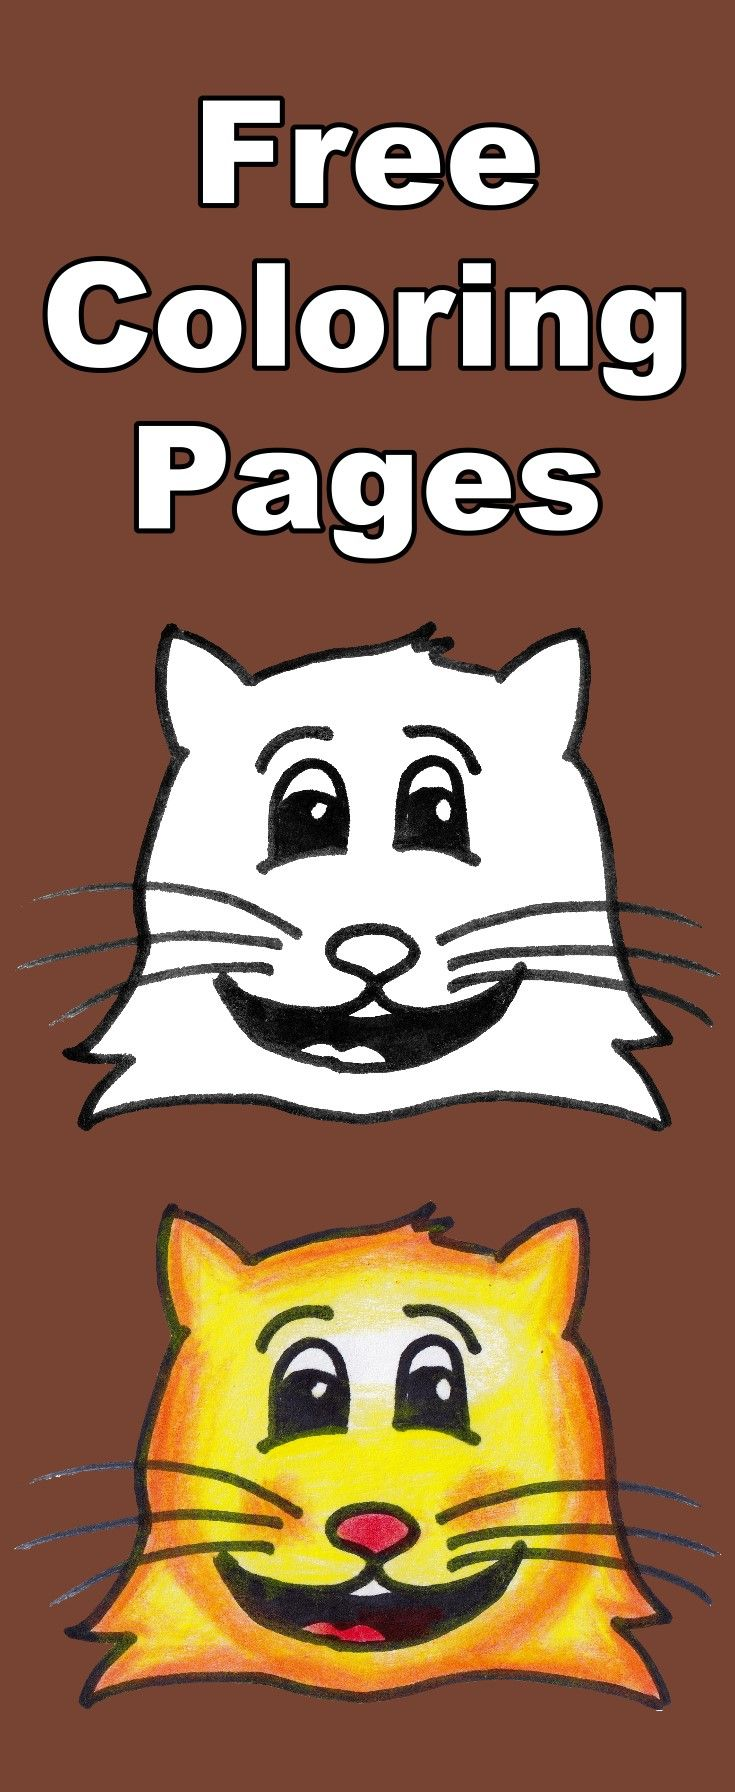 Download this free tabby cat emoji coloring page for kids, then ...